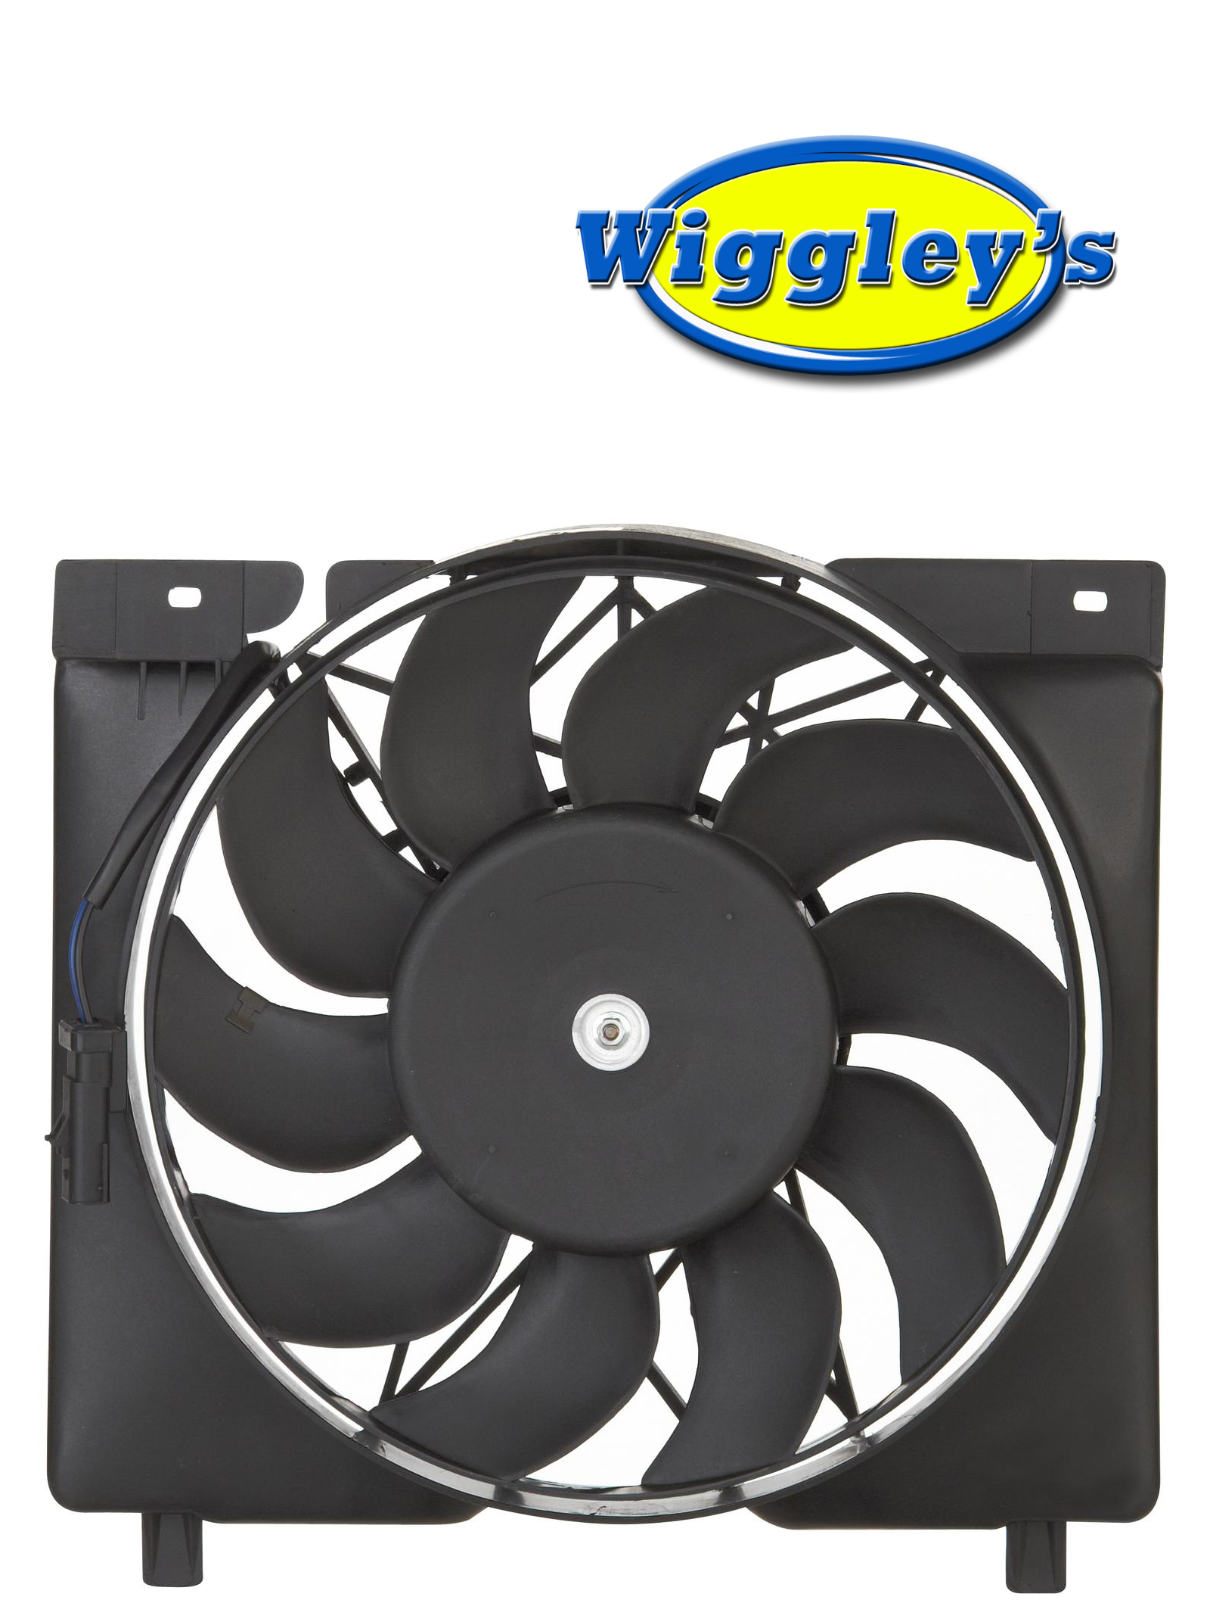 ENGINE COOLING FAN ASSEMBLY CH3115106 FOR 97 98 99 00 01 JEEP CHEROKEE L6 4.0L